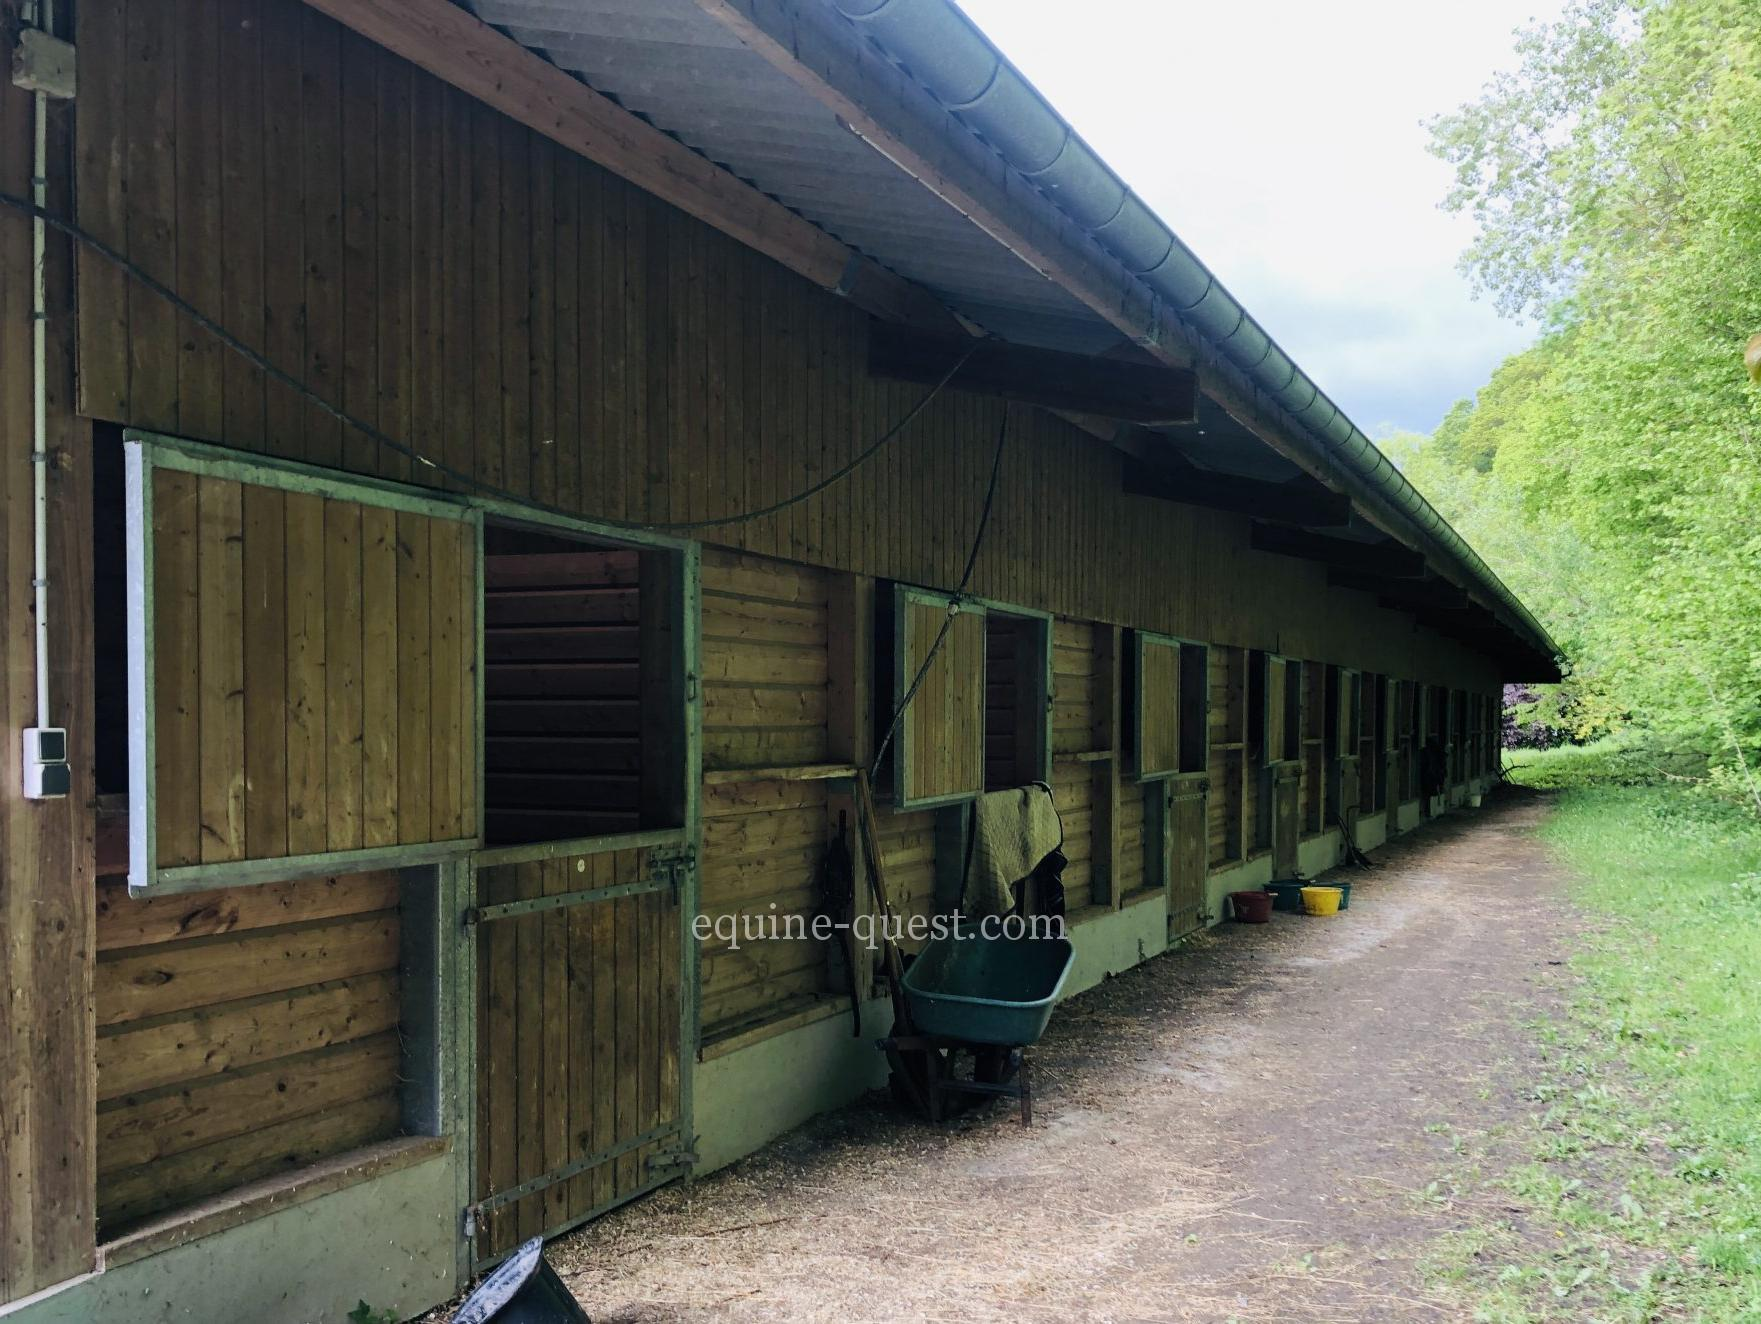 Equestrian property – Pays d'Auge area – 17 hectares